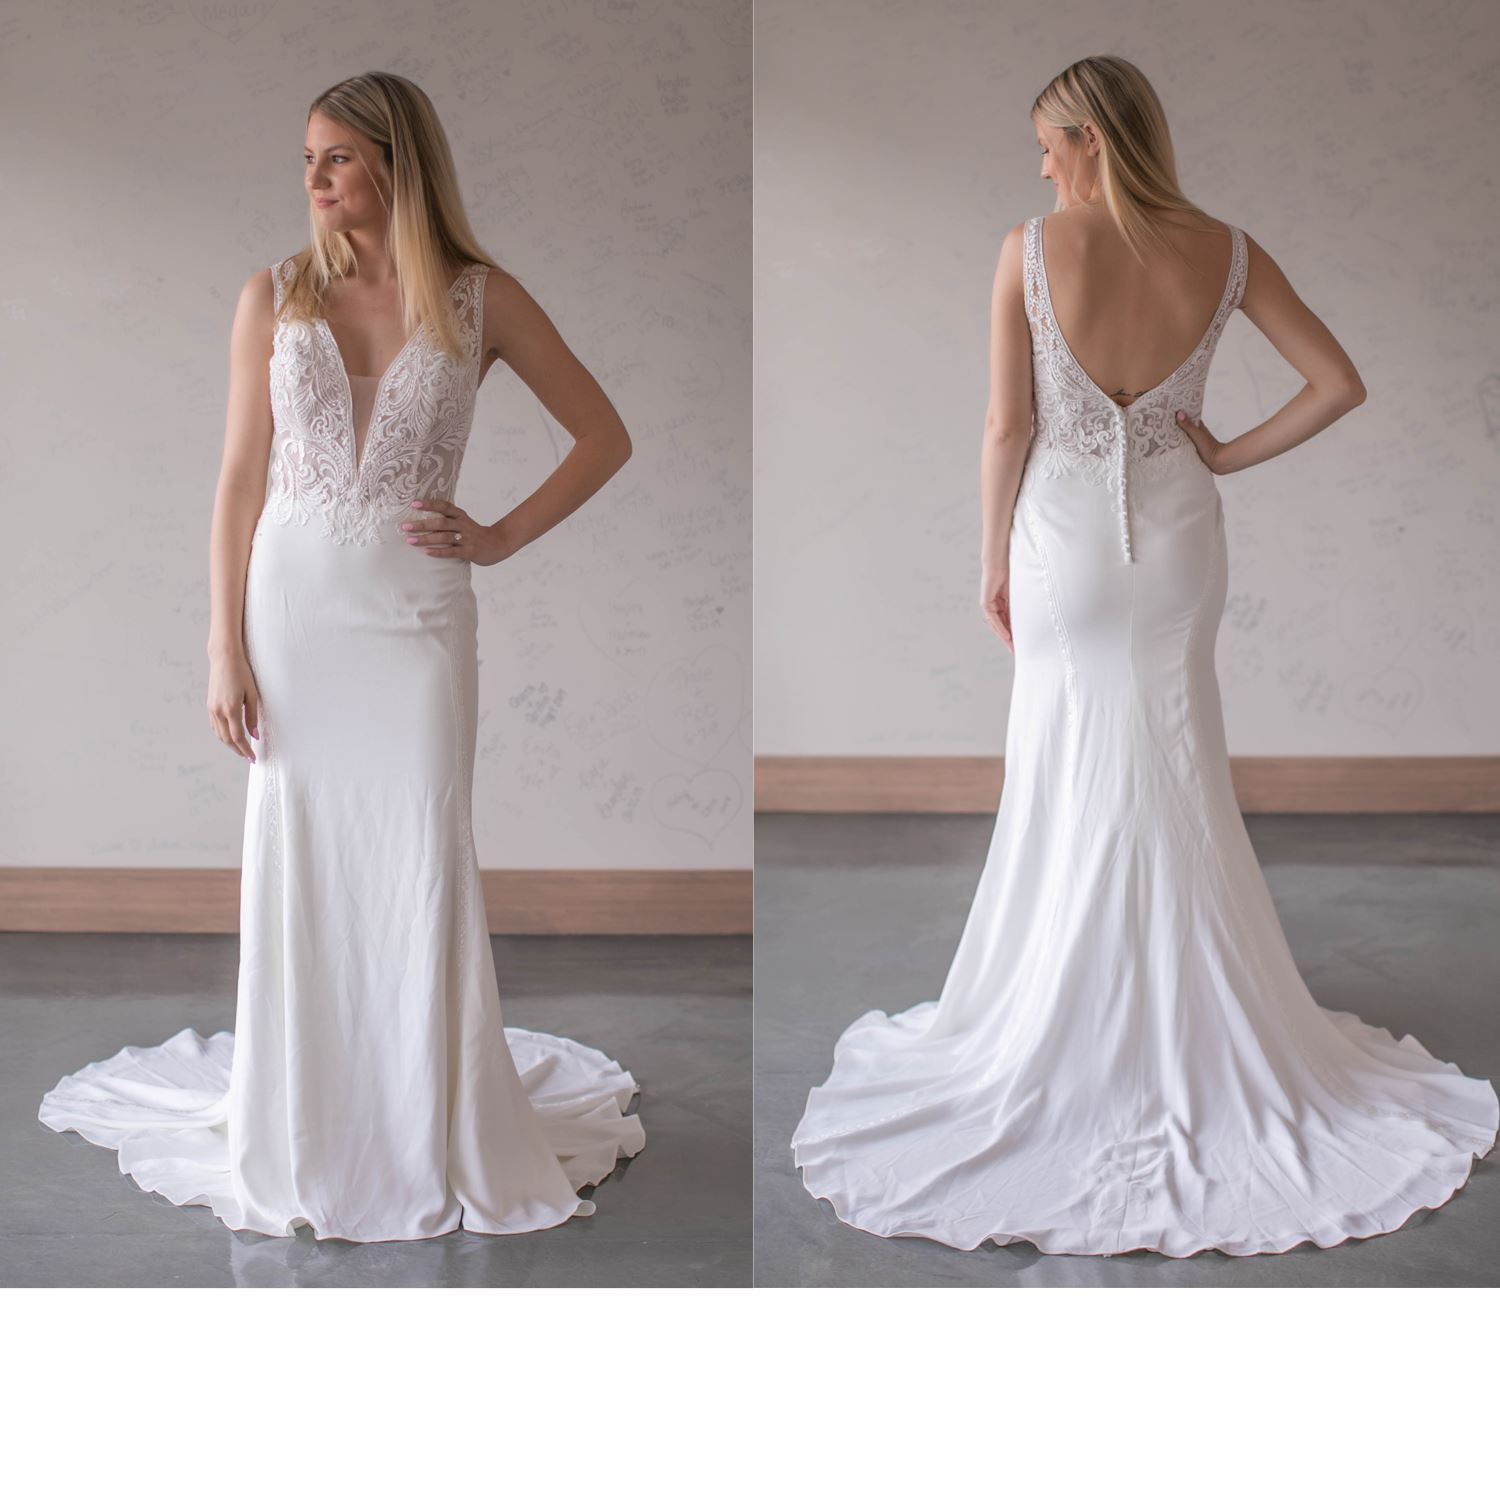 Melanie - Size 14 - Ivory/Nude - Originally priced $1699 - Sample box price $1499